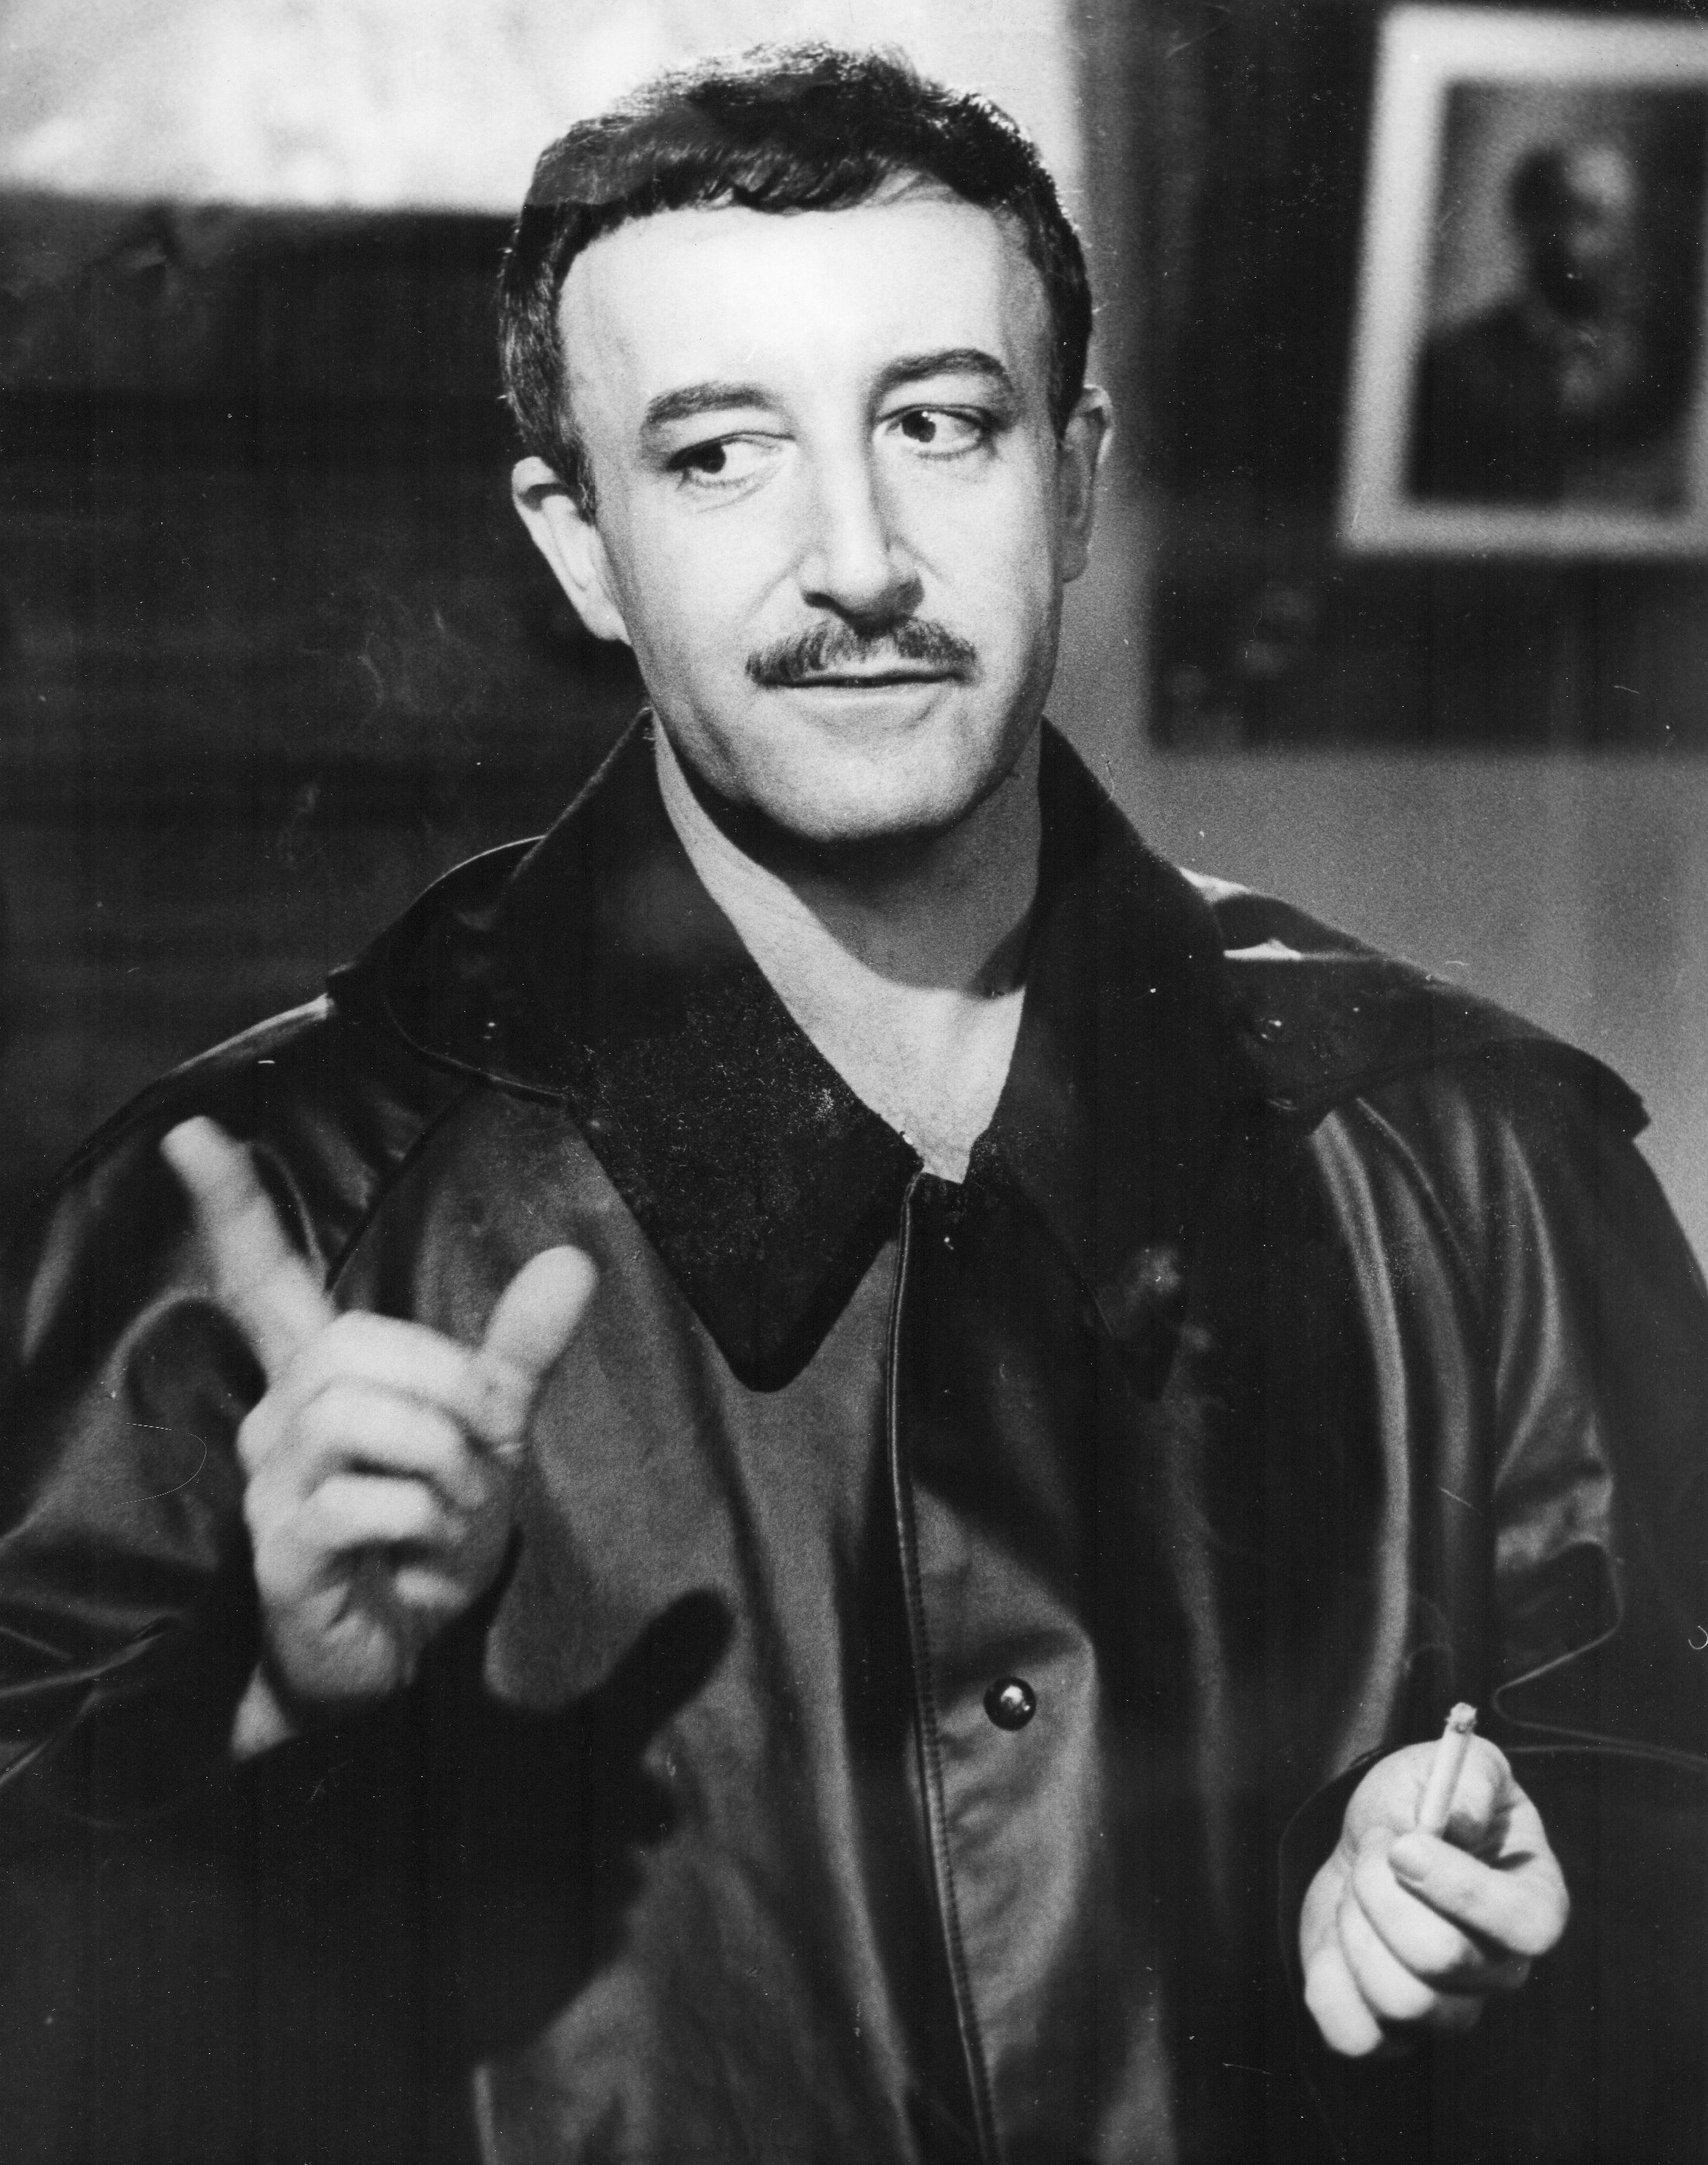 Peter Sellers For mobile